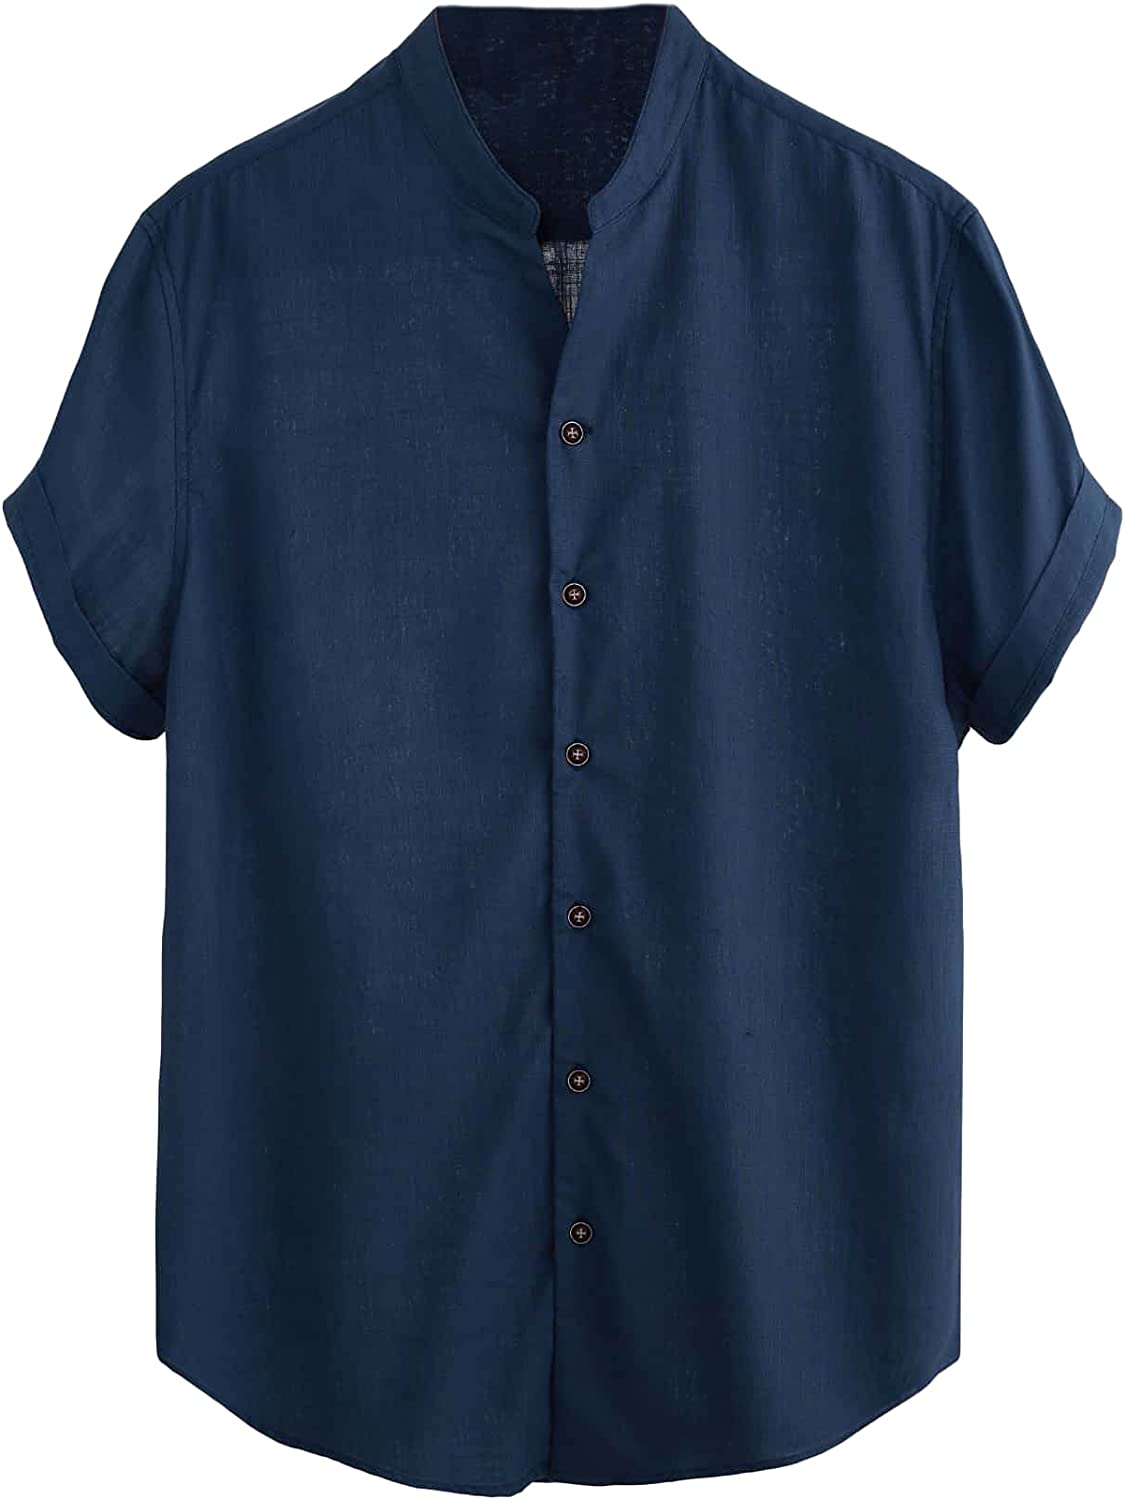 Milumia Men's Casual Shirt Button Up Short Sleeve Notched Shirt Button Front Work Top